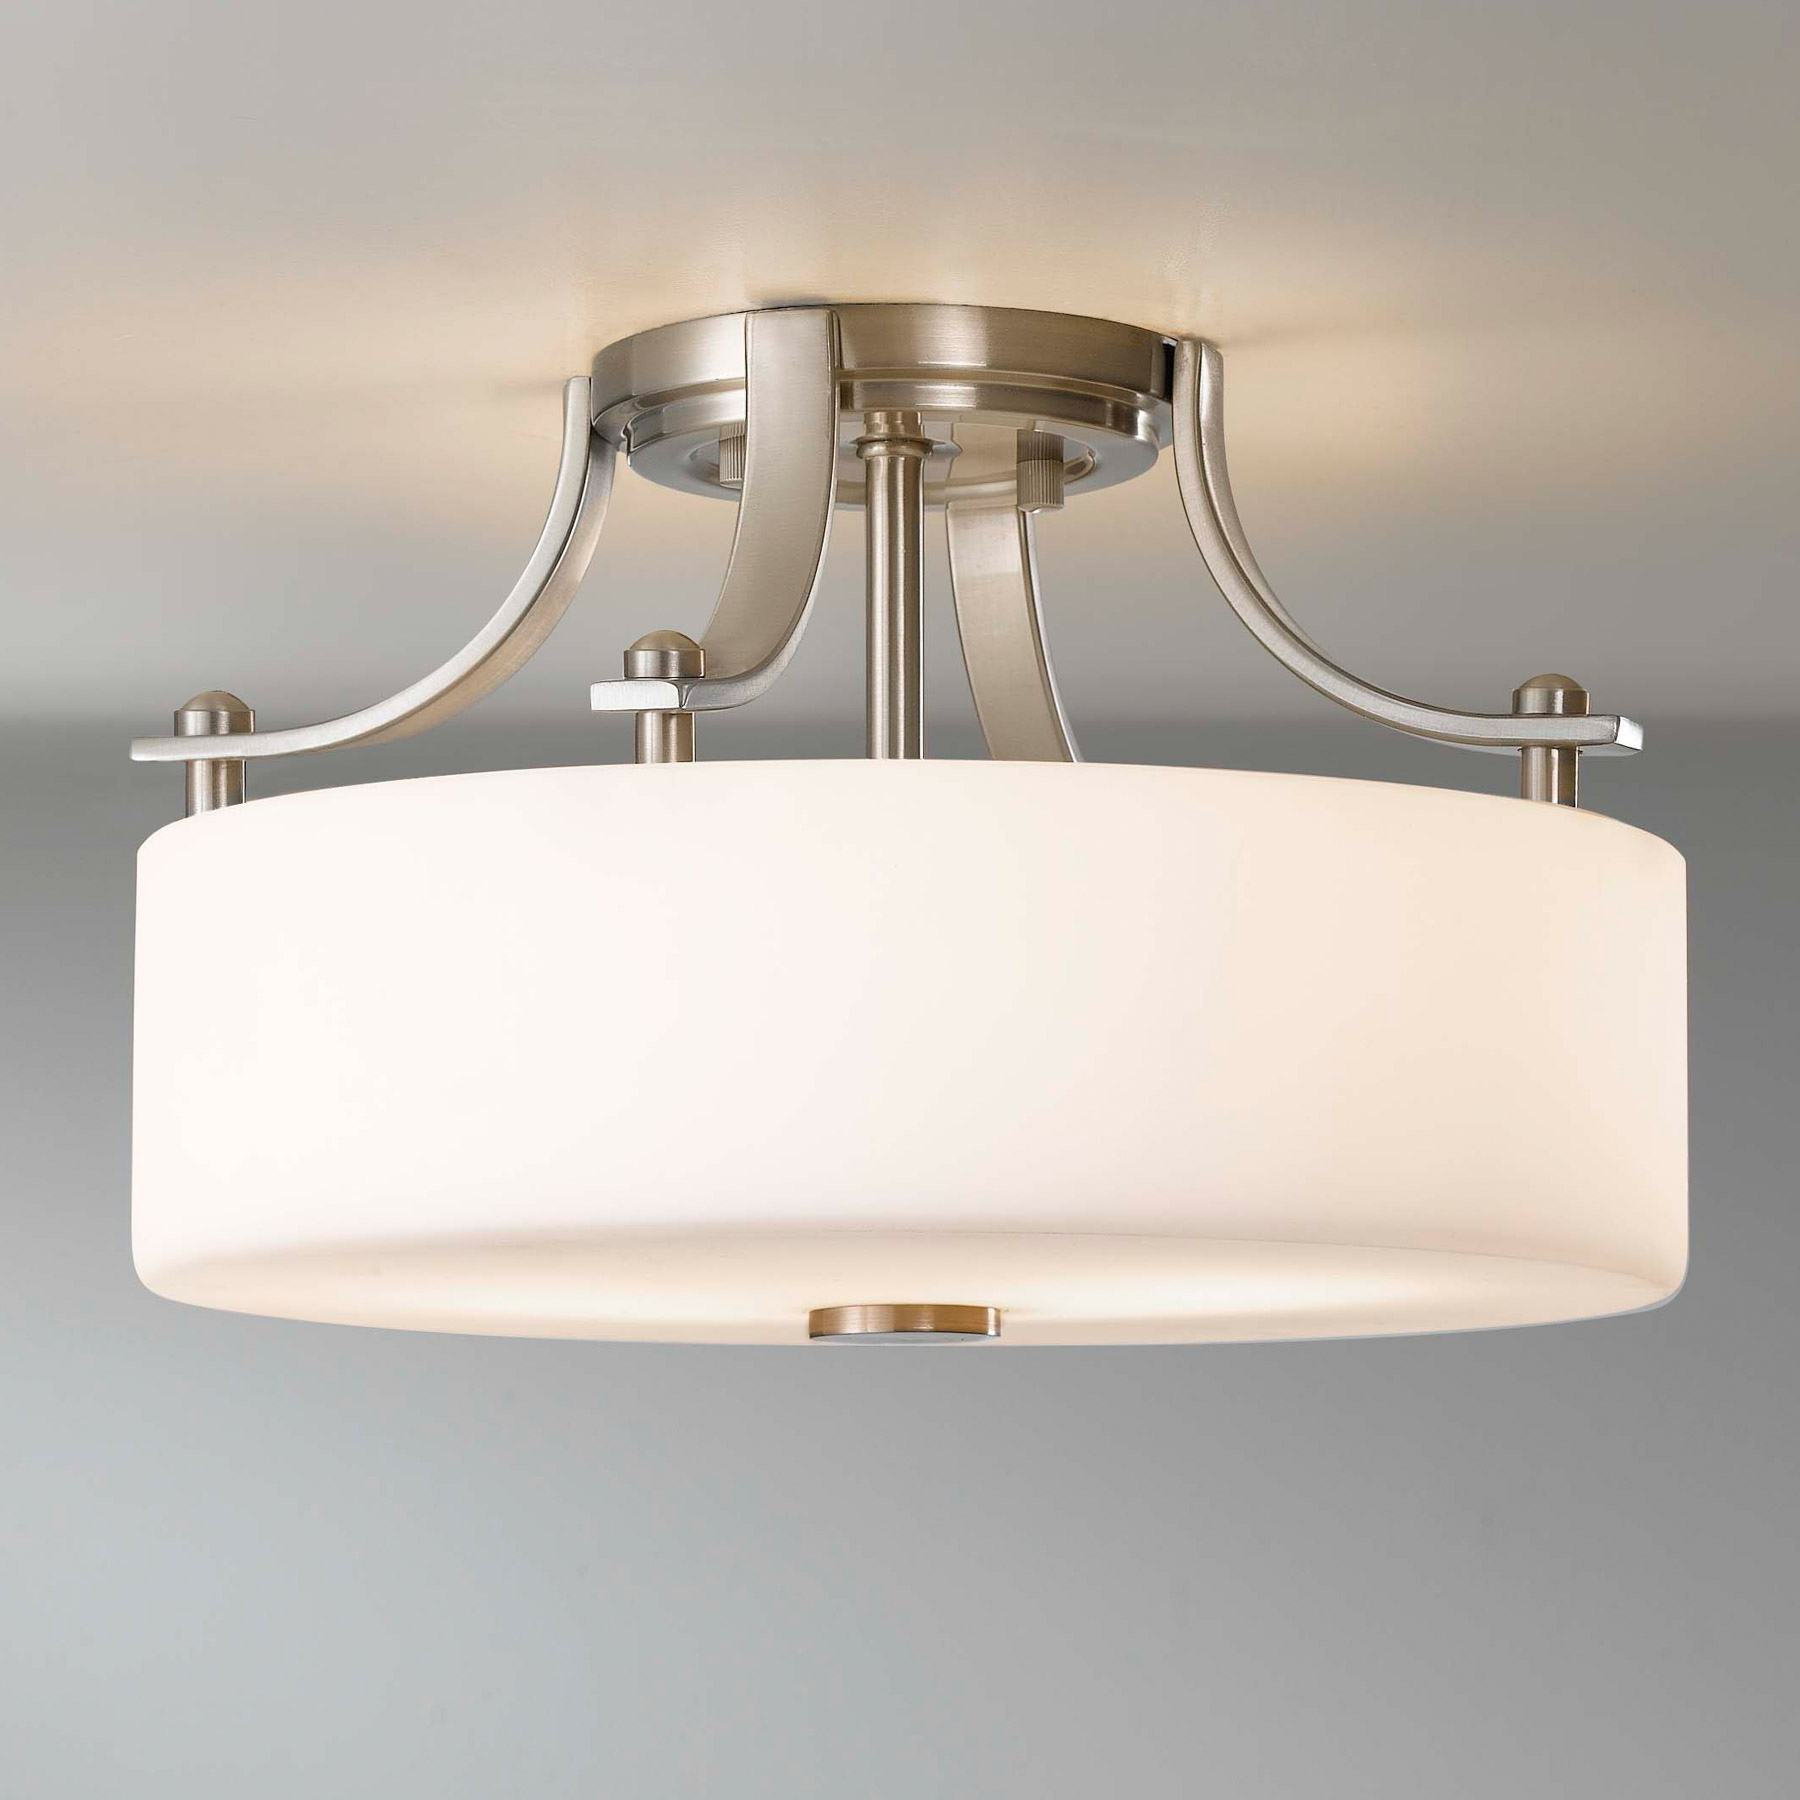 Modern Chandeliers Australia Murray Feiss Sf259bs Sunset Drive Semi Flush Ceiling Fixture